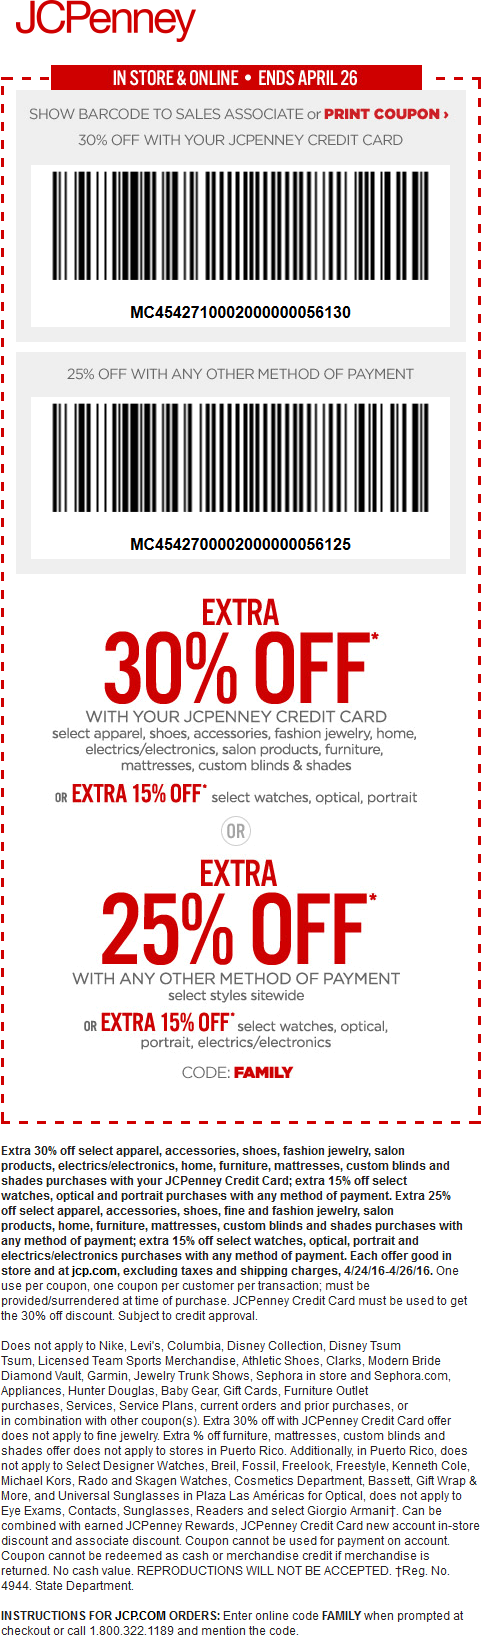 JCPenney Coupon February 2017 Extra 25% off at JCPenney, or online via promo code FAMILY